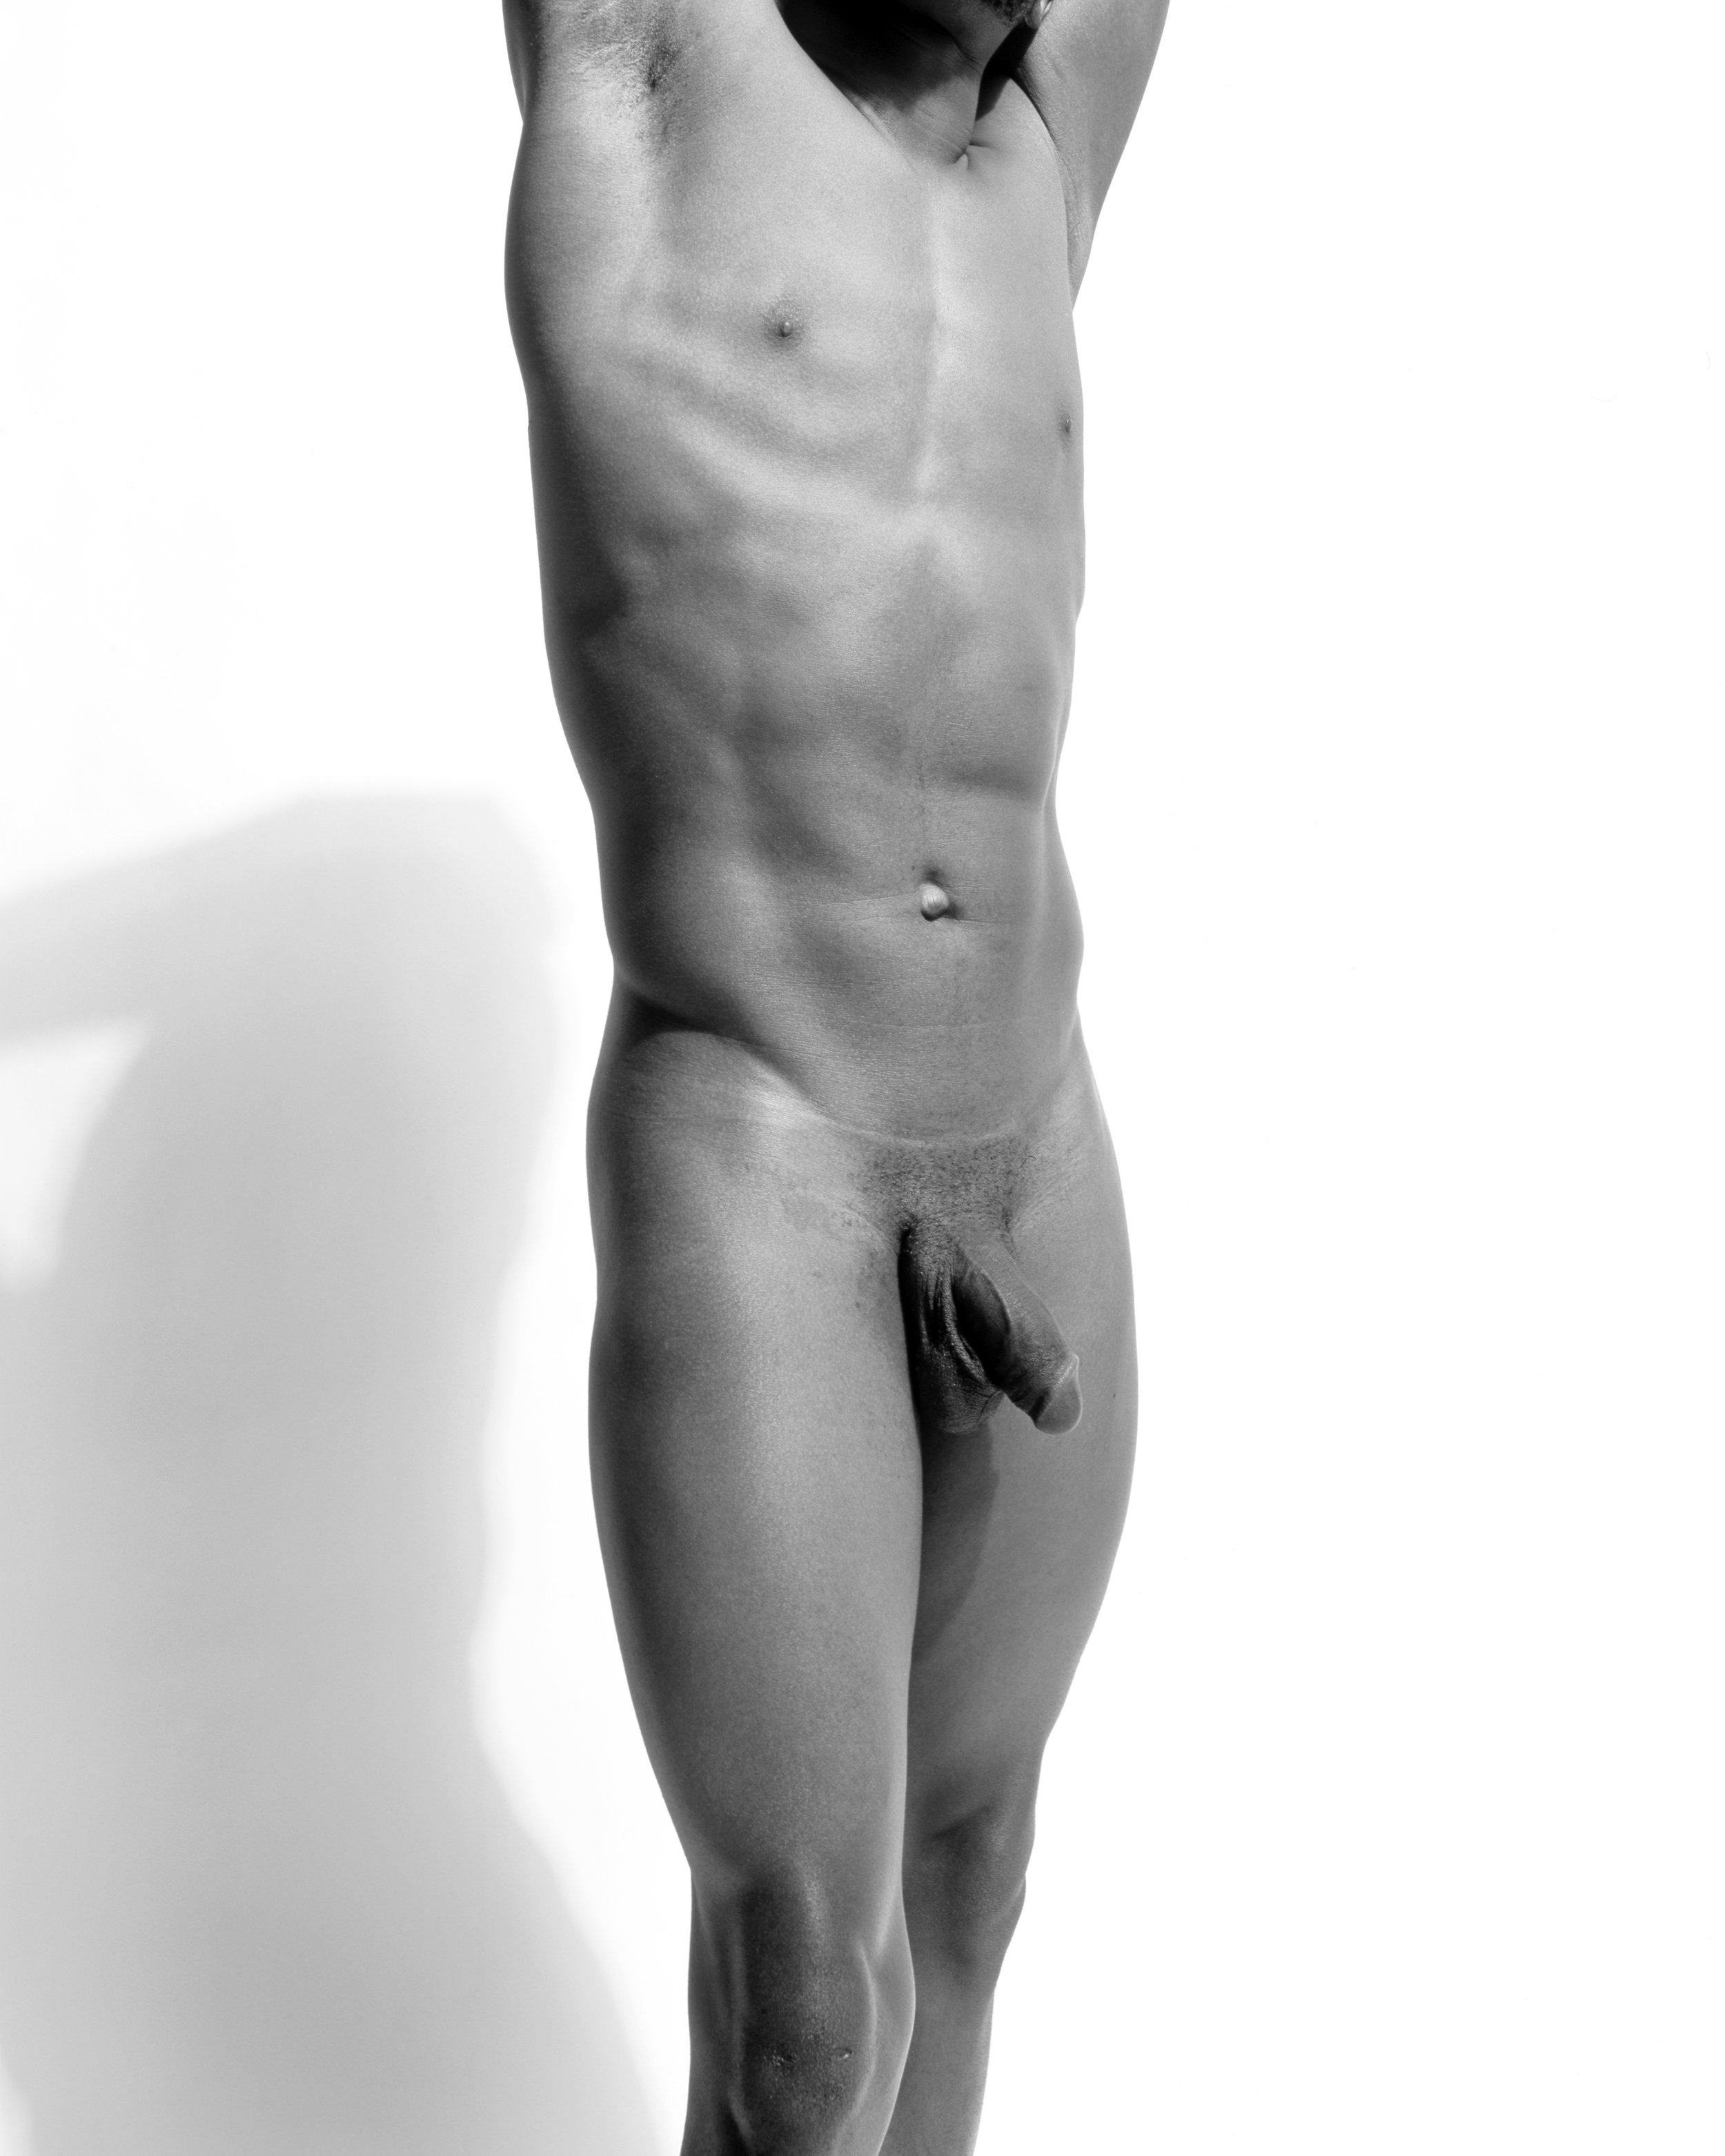 kouros two   Archival pigment print Edition of 5 + 2AP 16 x 20 in